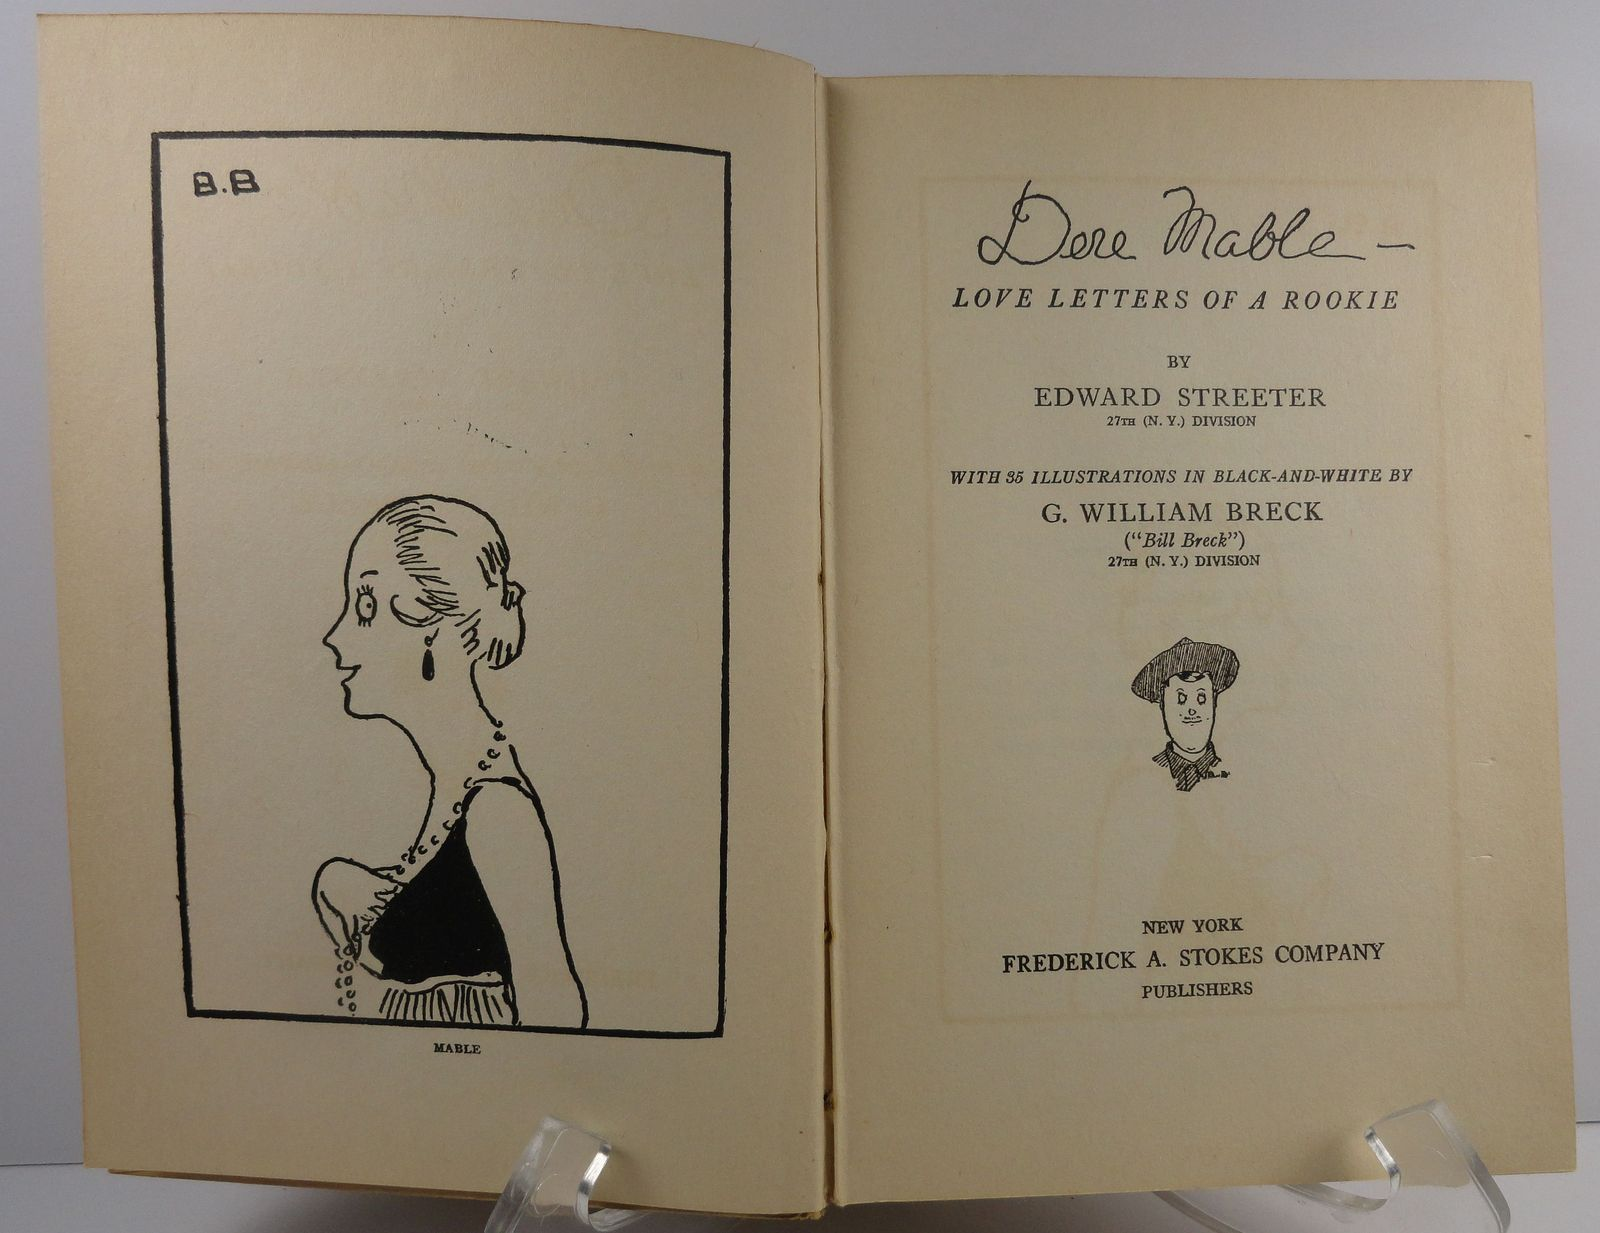 Dere Mable  Love Letters of a Rookie by Edward Streeter 1918